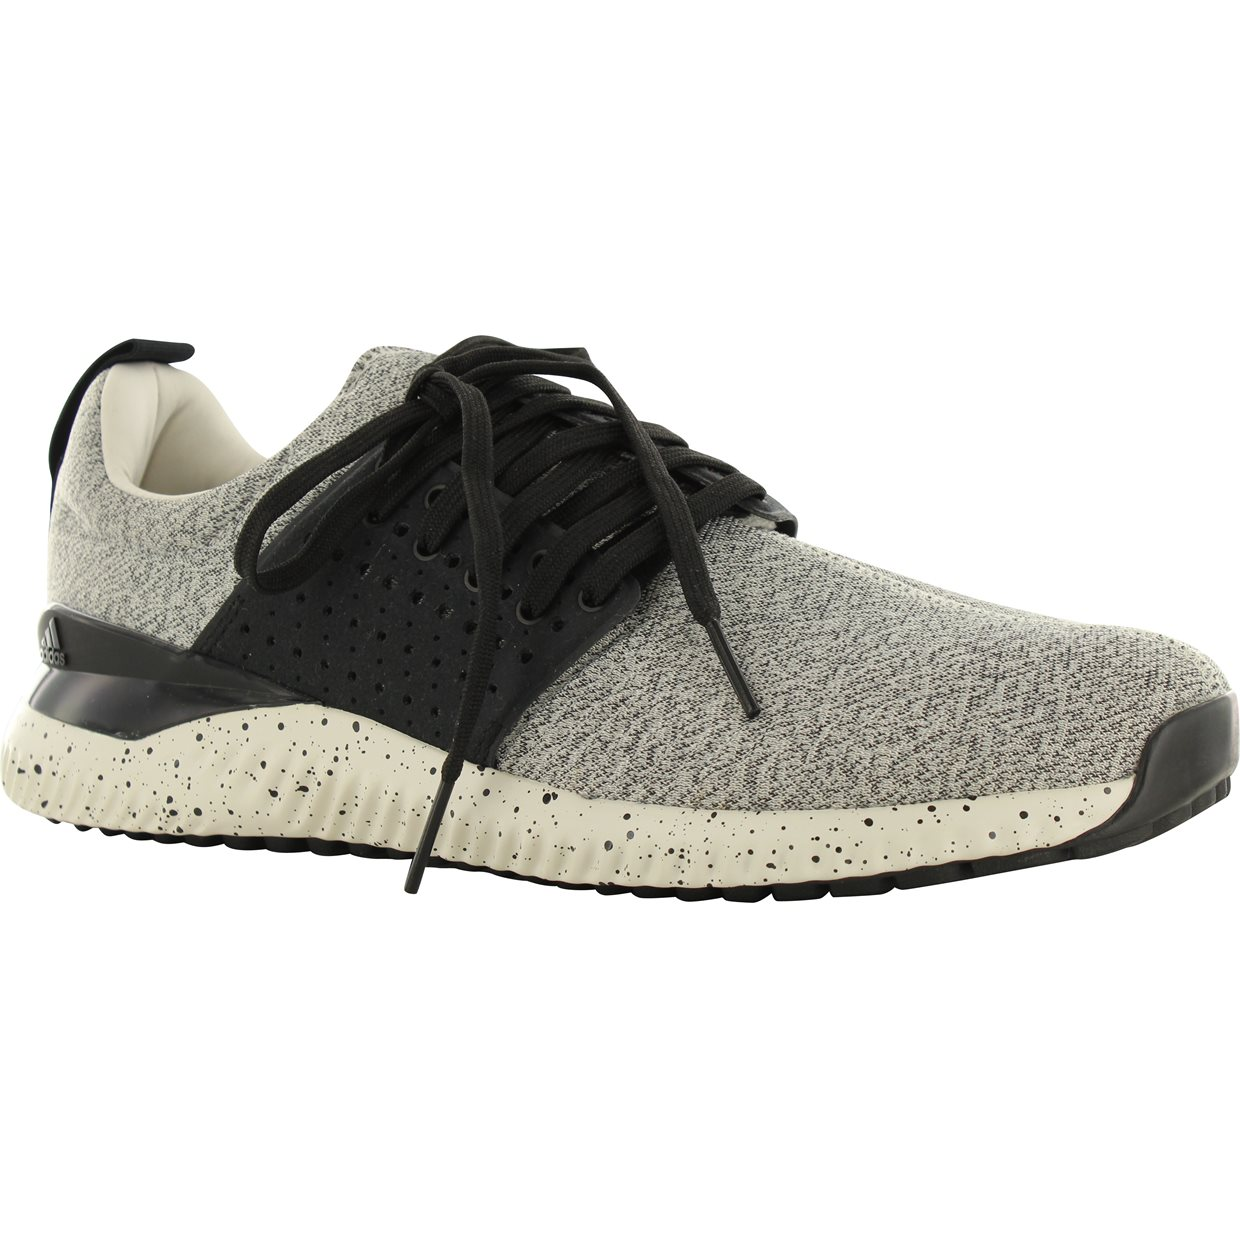 7c1532adb Adidas adiCross Bounce 2019 Spikeless Shoes. Drag 360 Left or Right to  View. Alternate Product Image View 1 ...